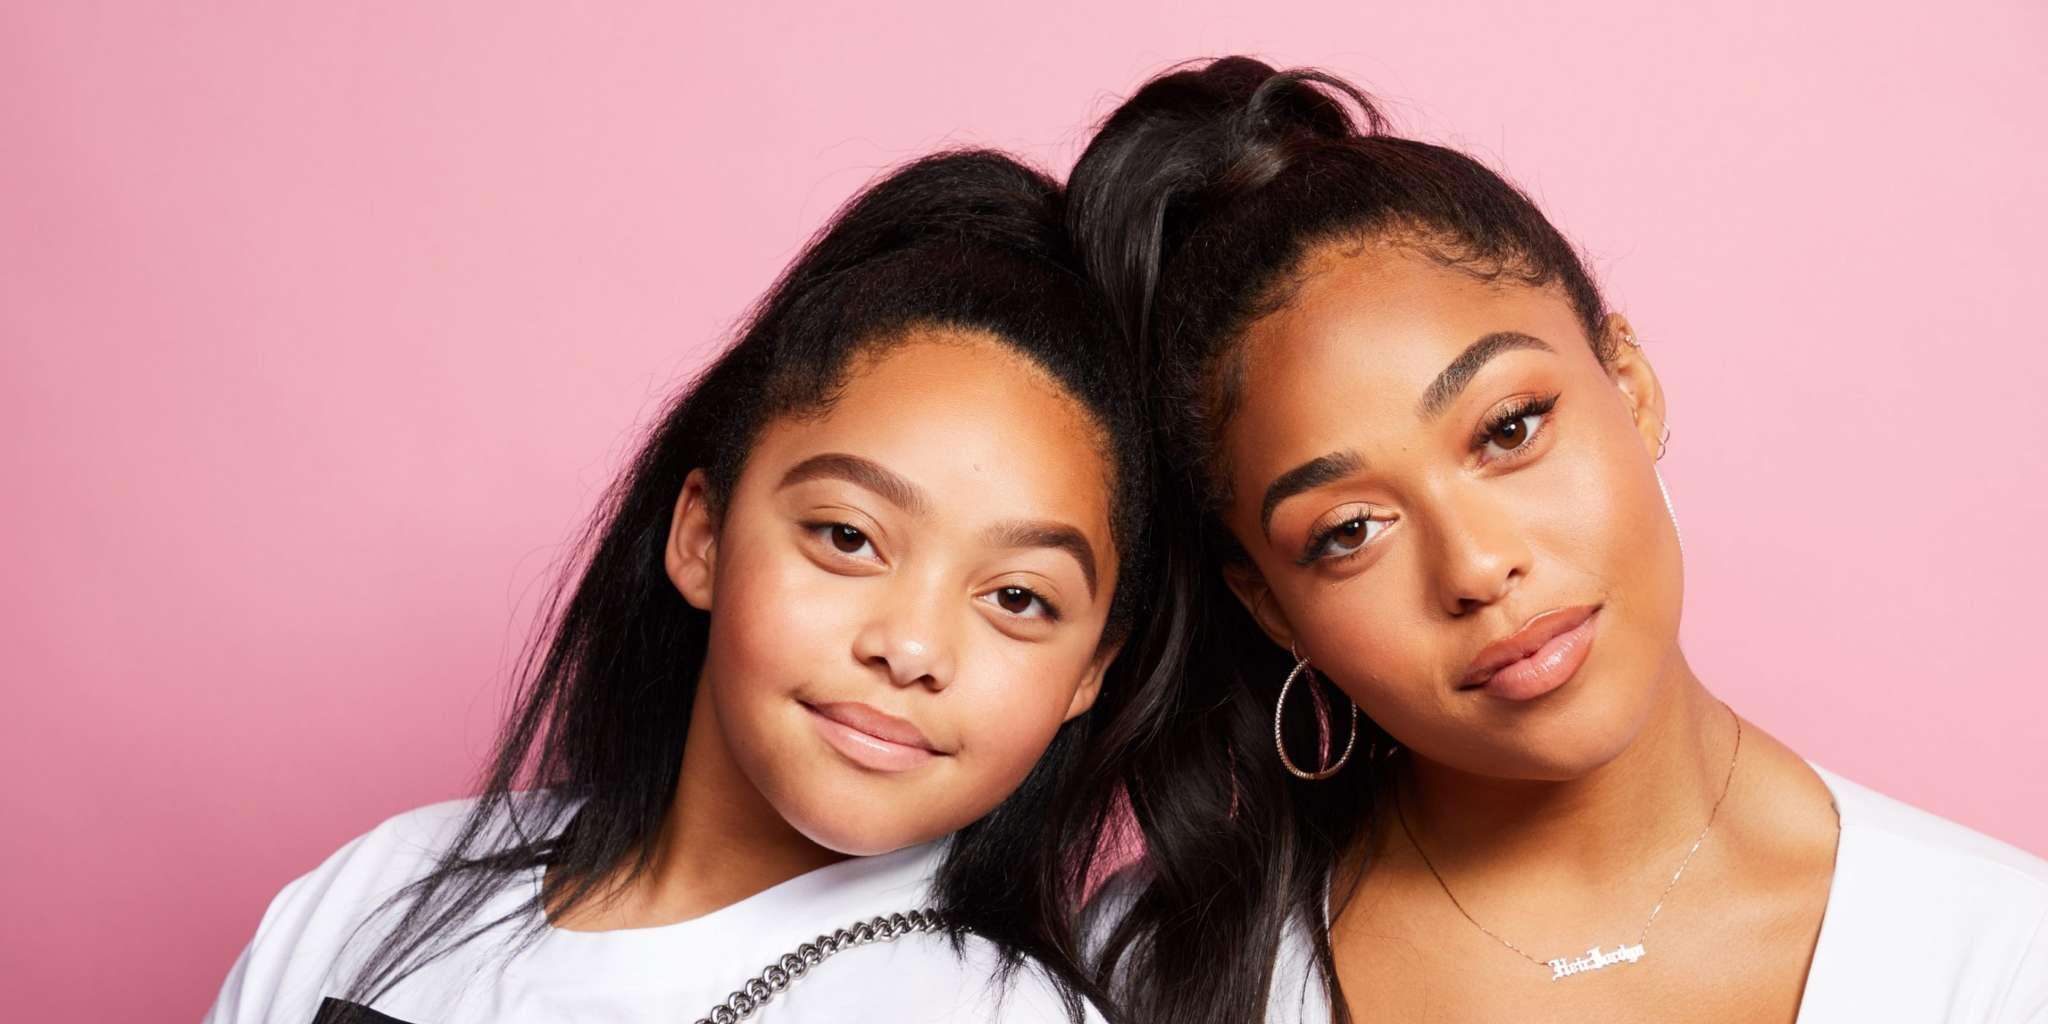 Jordyn Woods Is Twinning With Her Sister While Promoting Her Recently Released Lashes - See The Videos